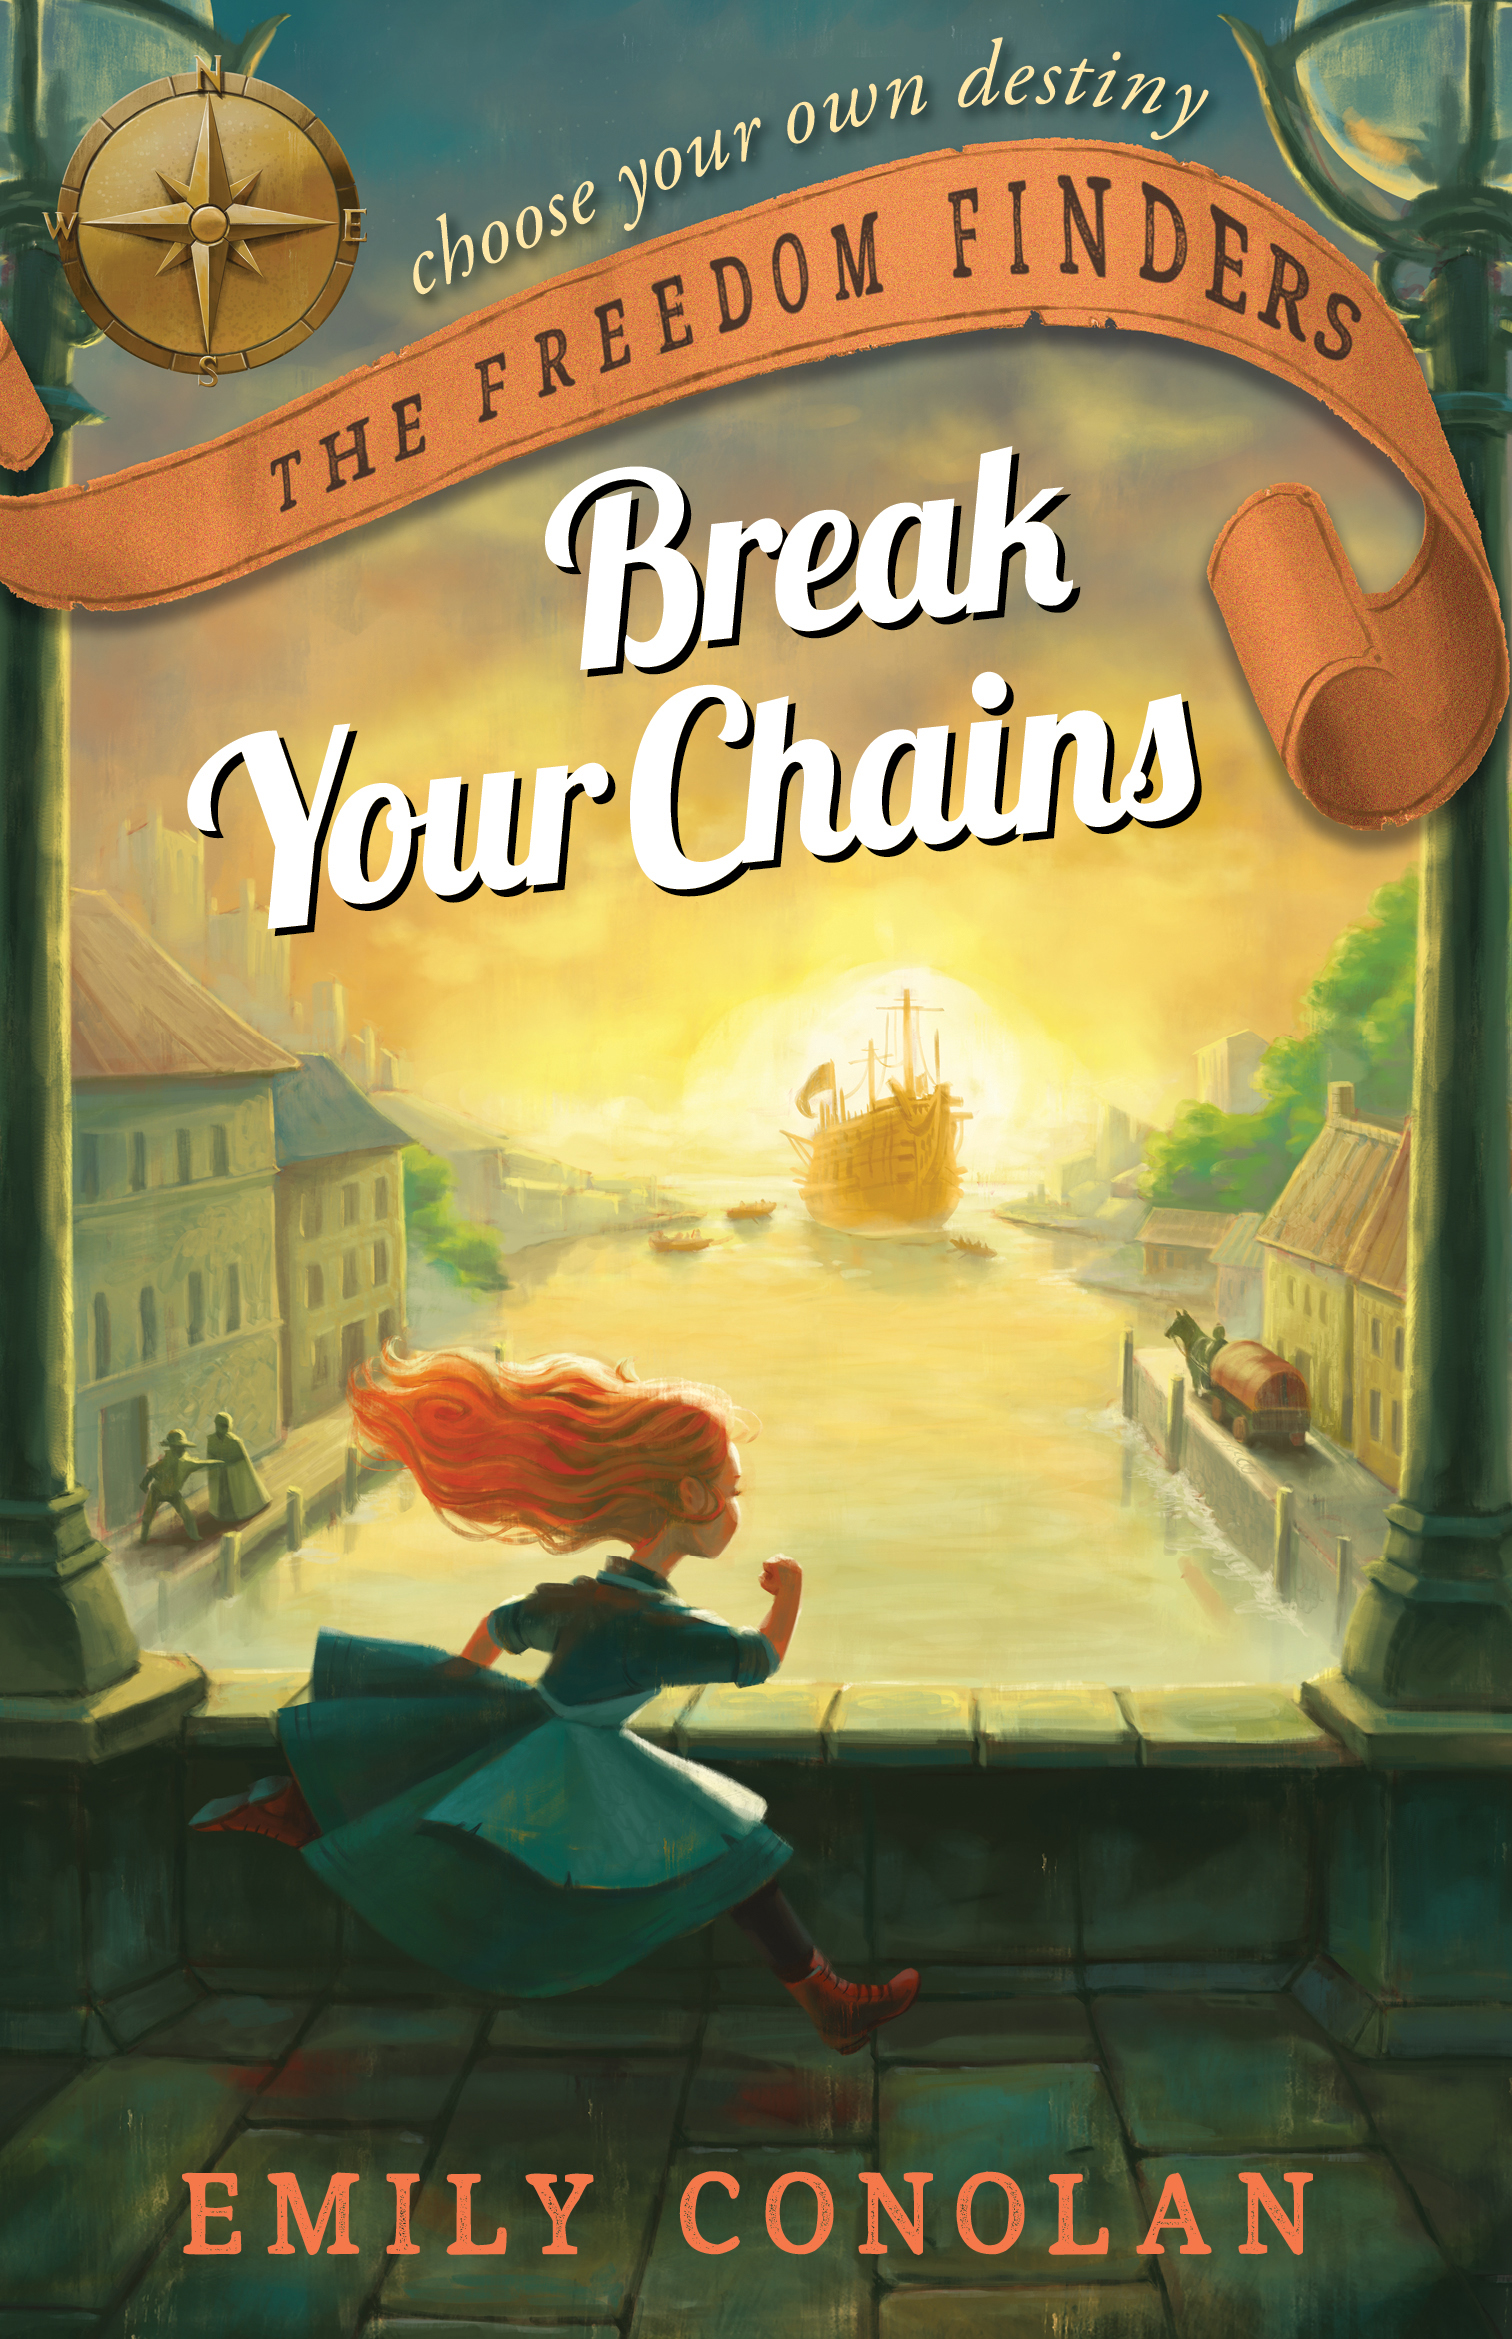 Break Your Chains by Emily Conolan